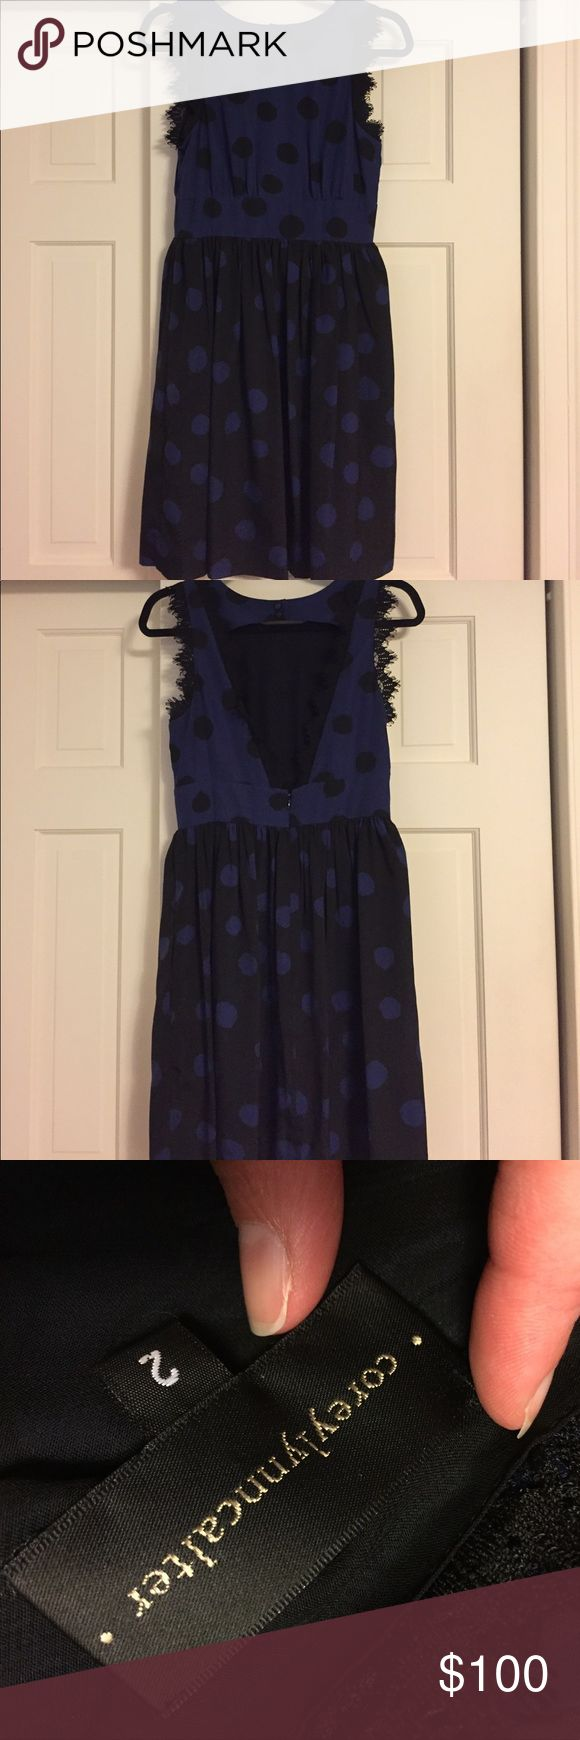 Beautiful open back navy and black cocktail dress Women's size 2 Coreylynncalter - from Anthropoligie  Black and navy/blue polka dot dress - has pockets! Anthropologie Dresses Mini